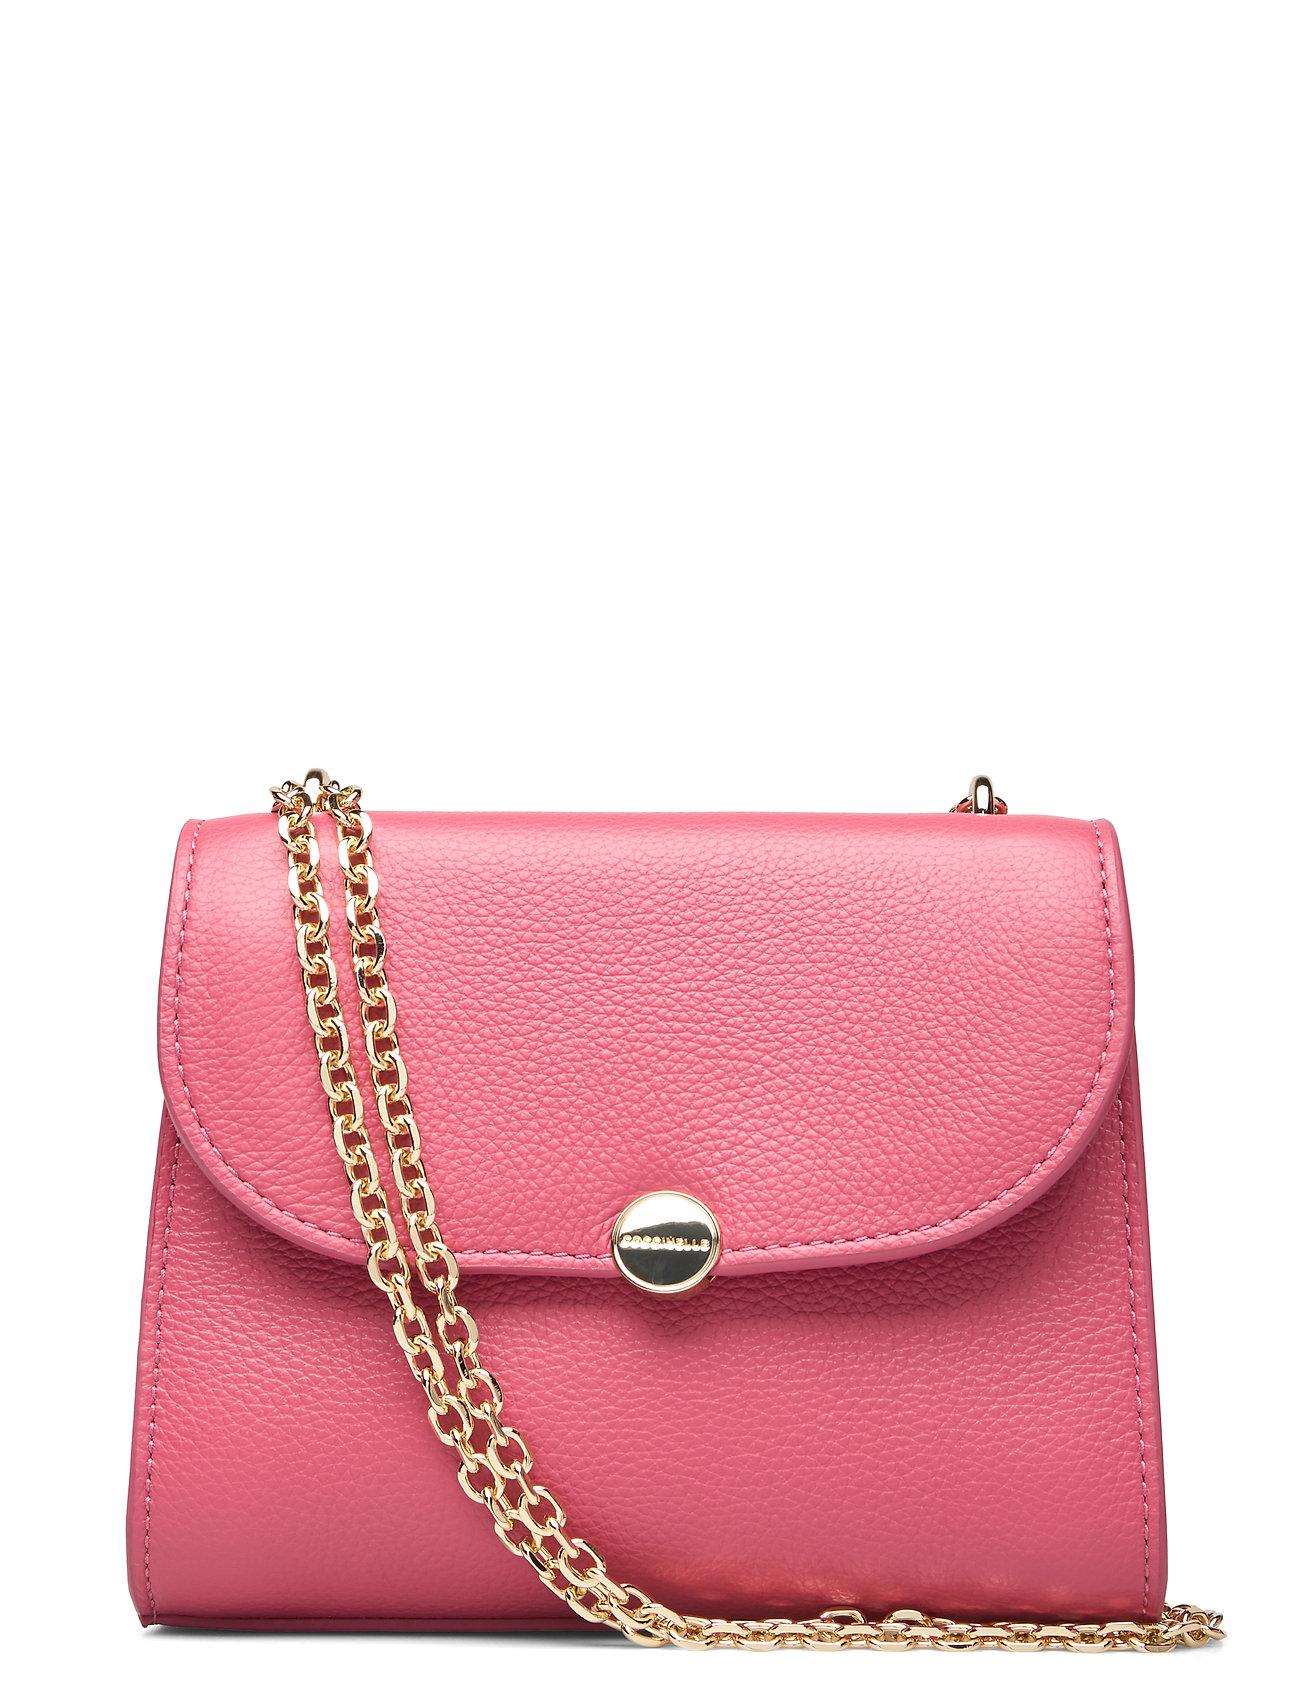 Coccinelle MINI BAG - BOUGANVILLE